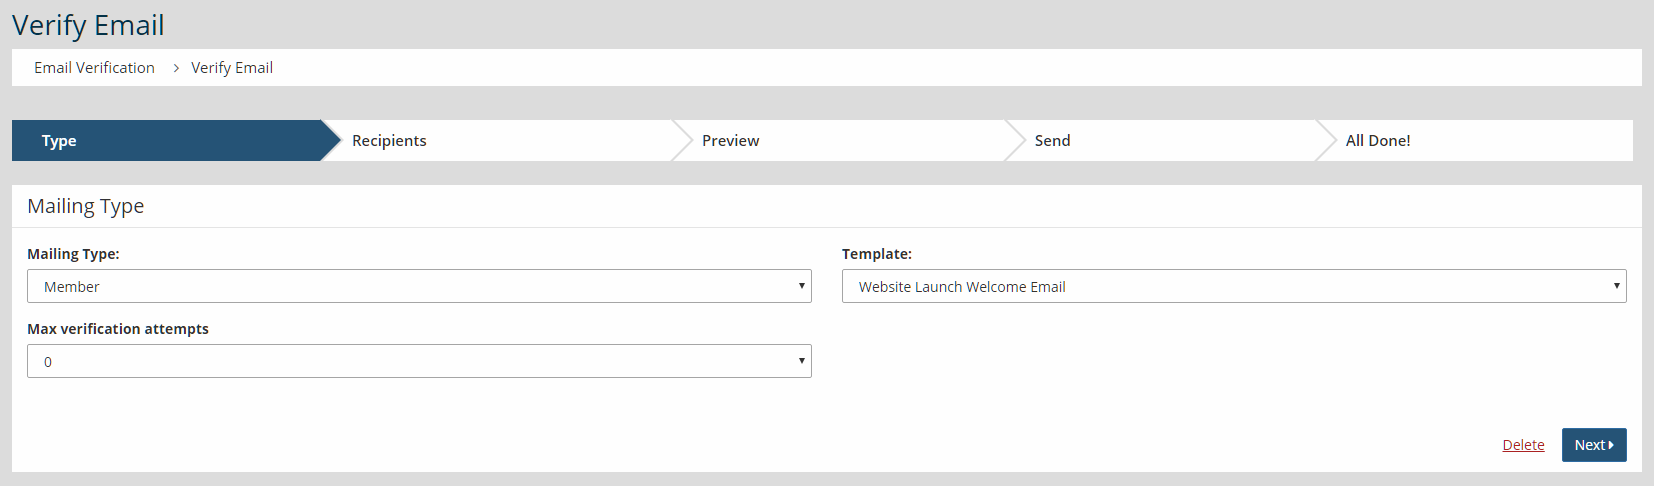 Communications-HowTo-Send Welcome Email To A Mix Of Verified Members - Website Launch Welcome Email Template